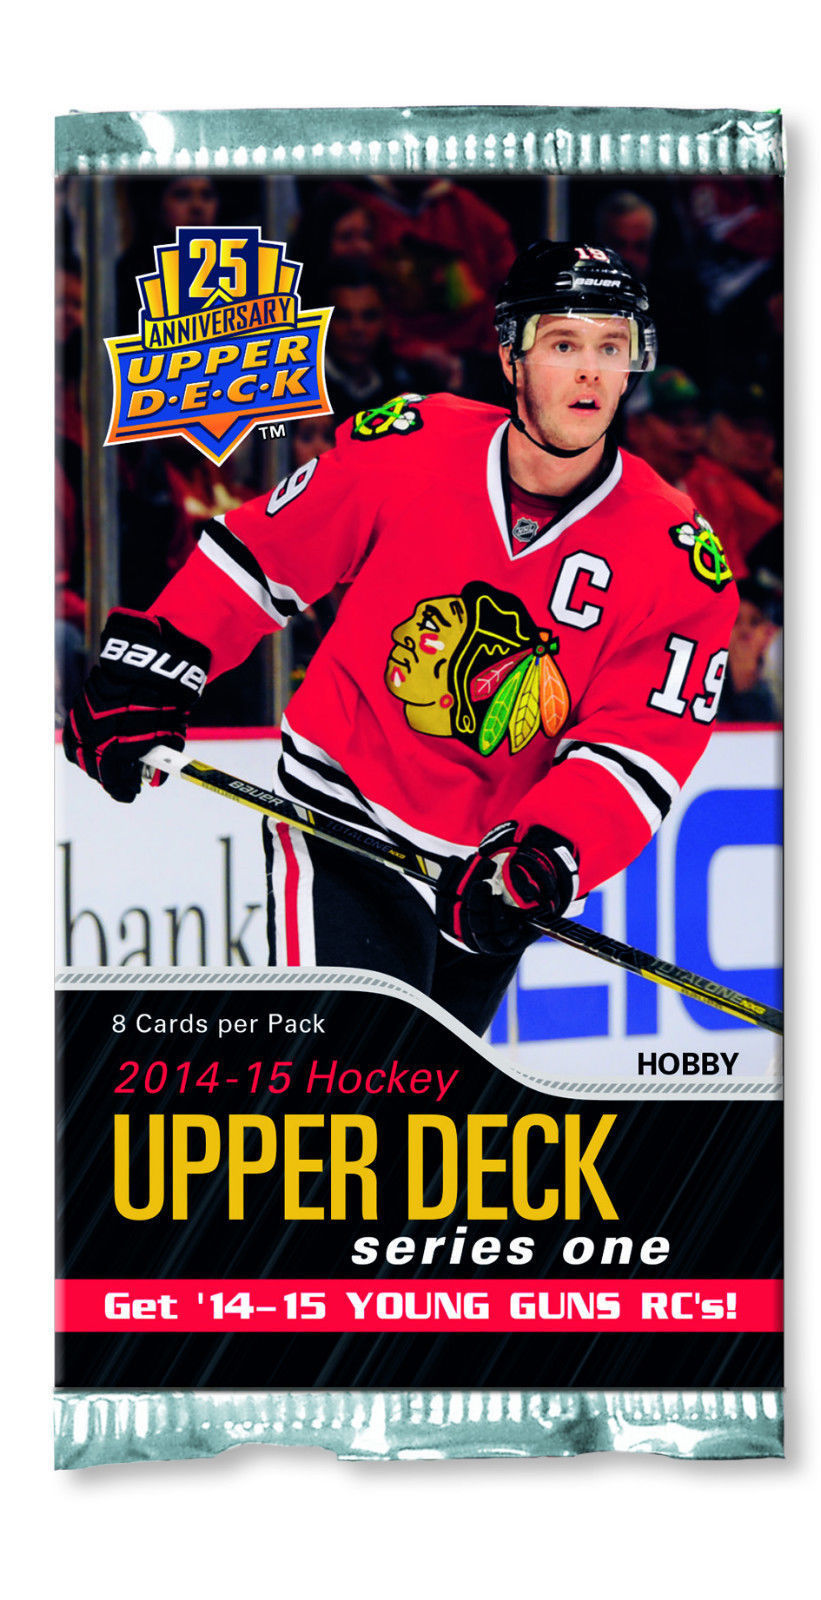 2014 15 Upper Deck Hockey Cards Are Finally Here West Toronto